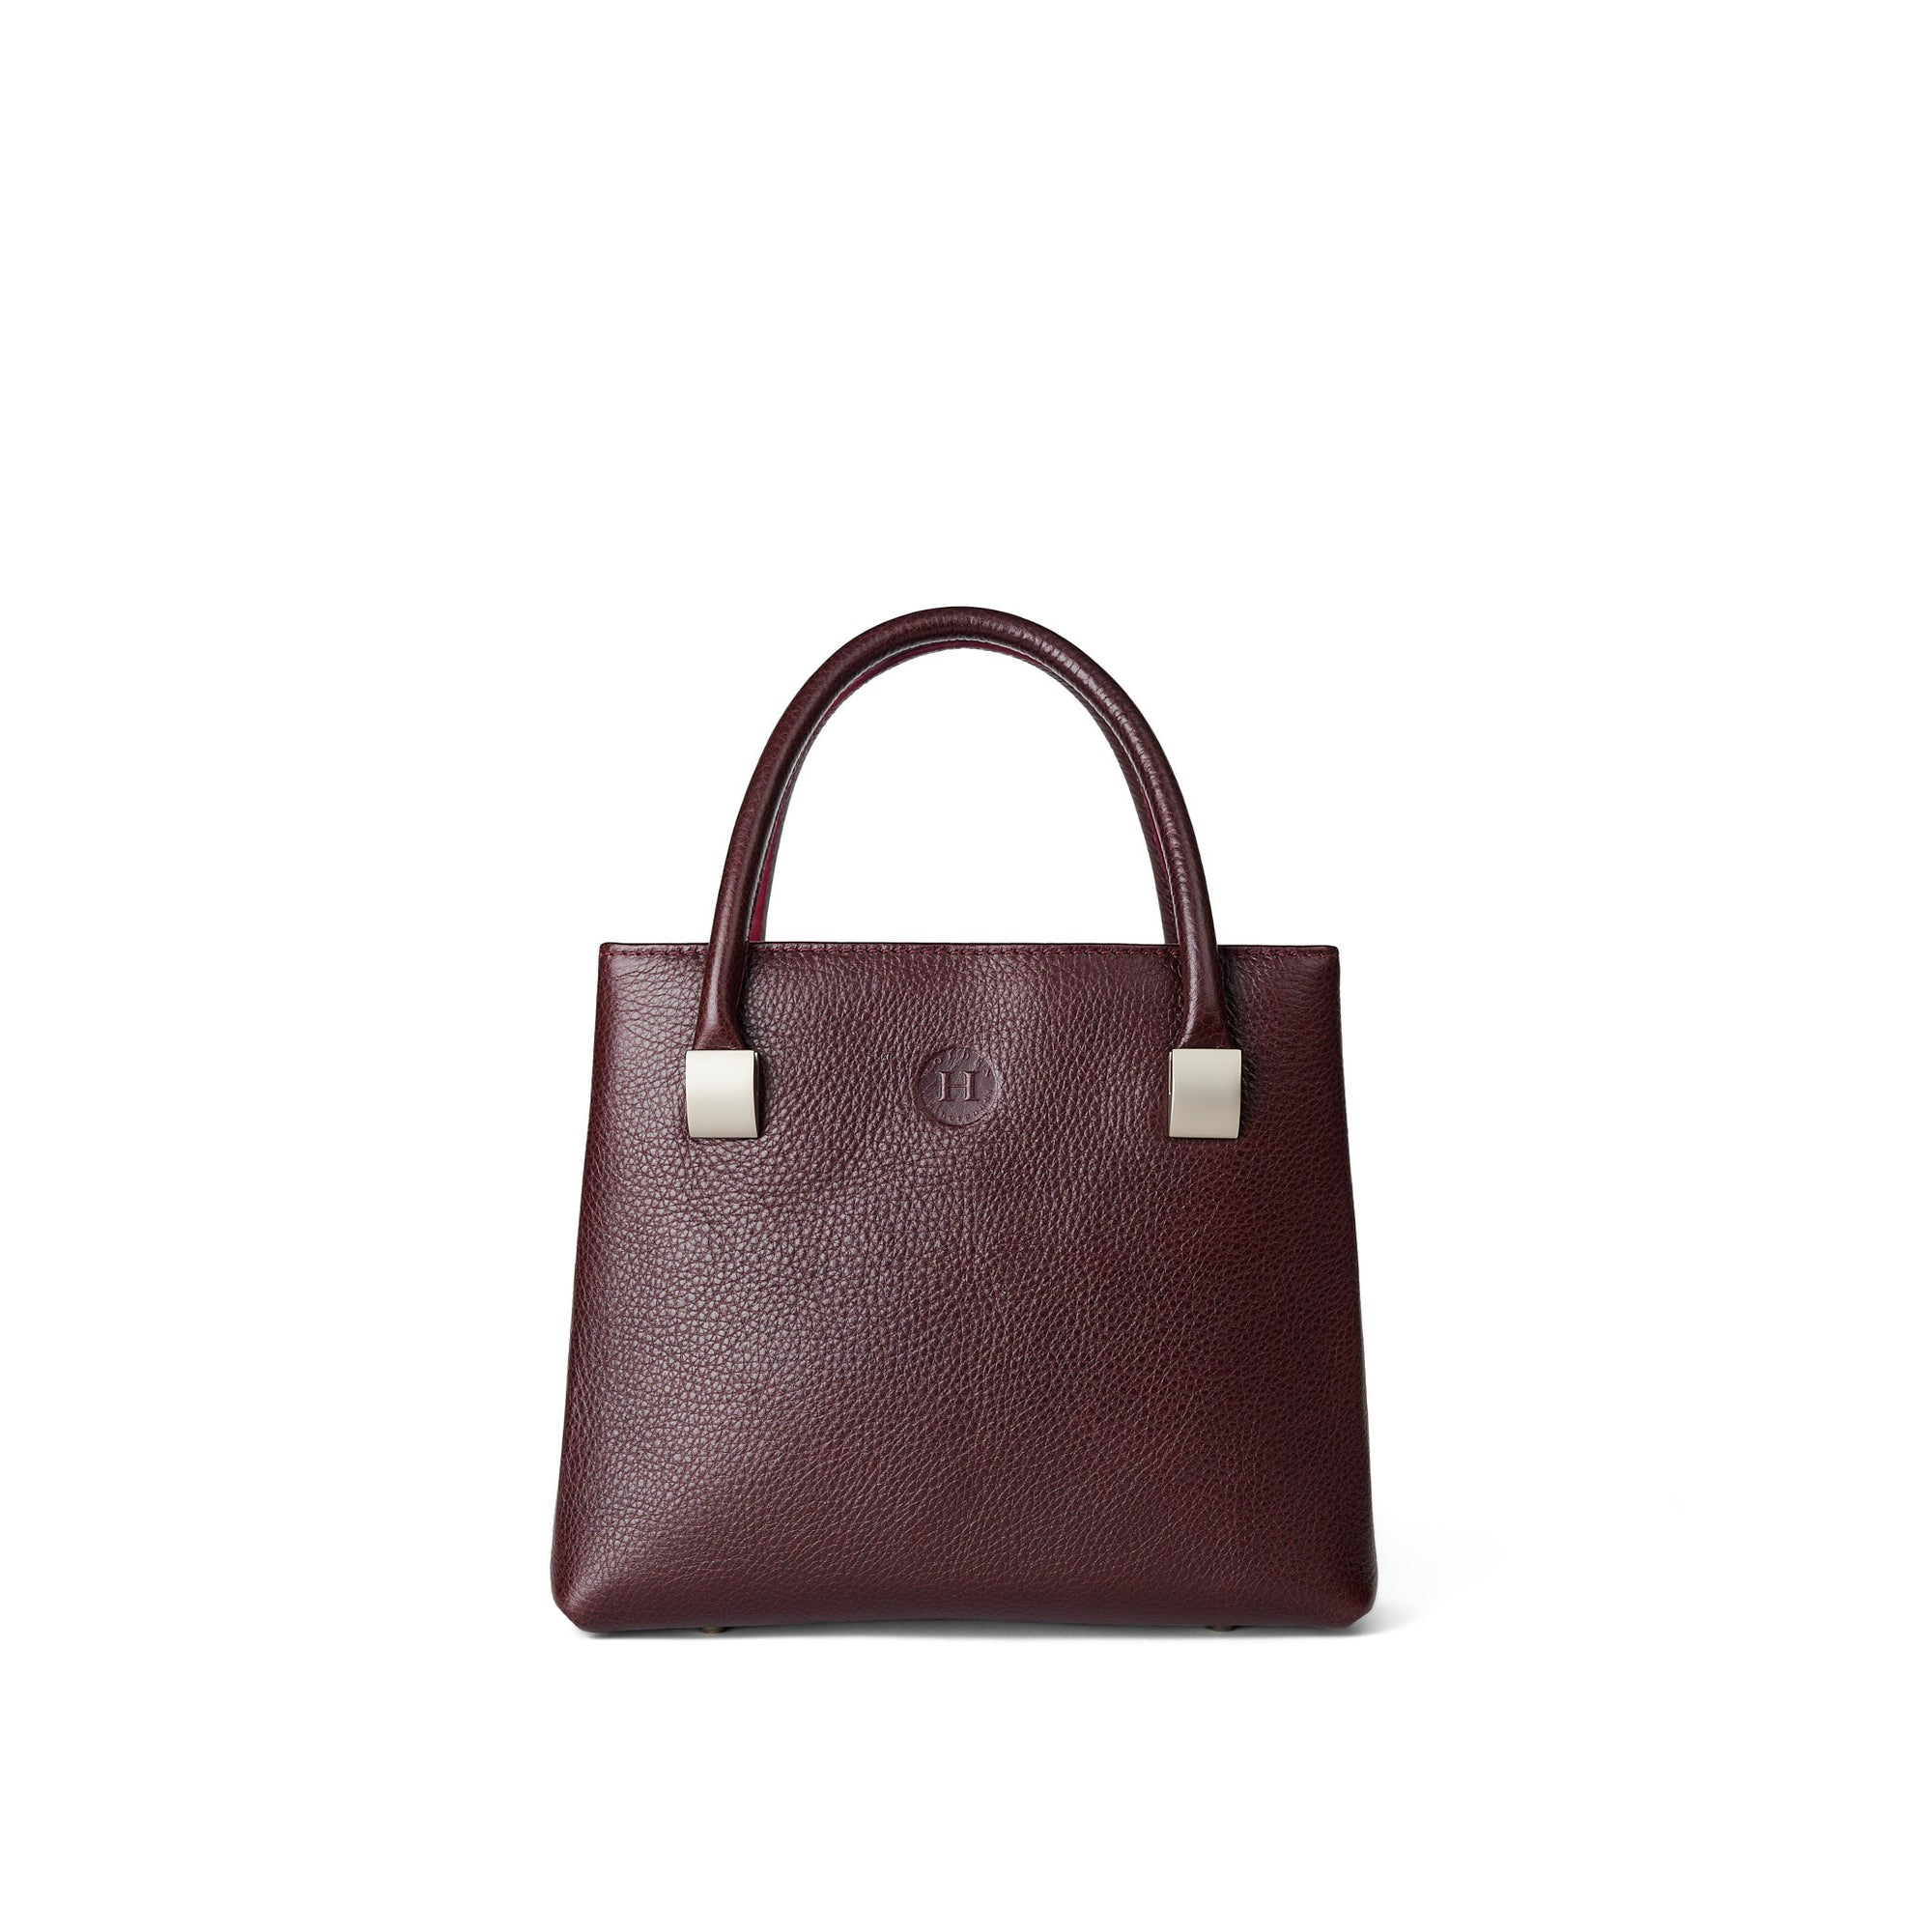 Aoife Small Handbag - Burgundy